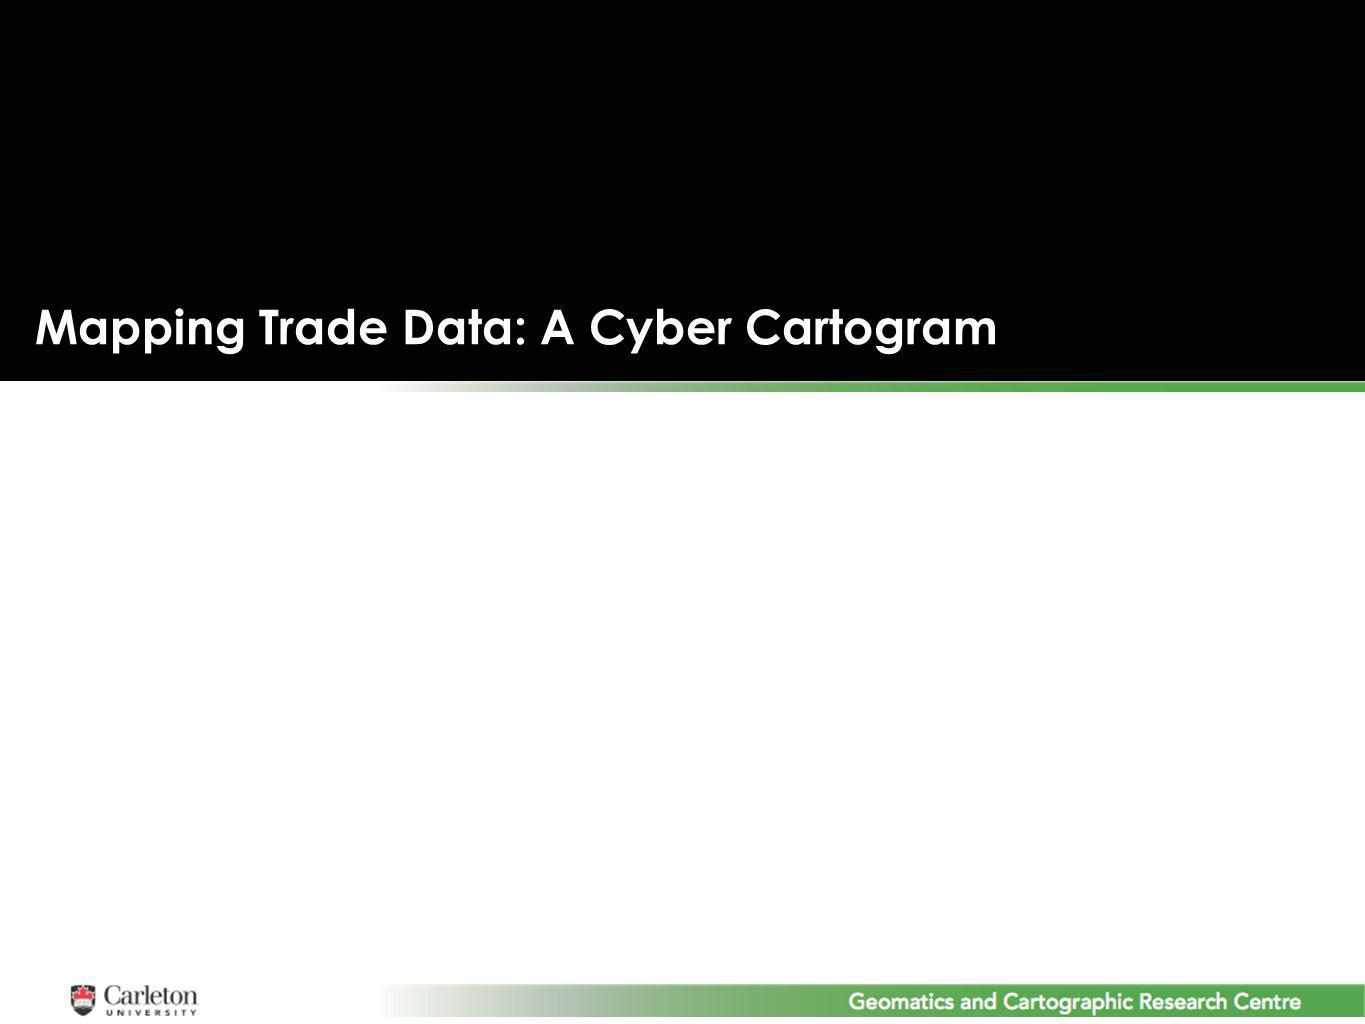 Mapping Trade Data: A Cyber Cartogram